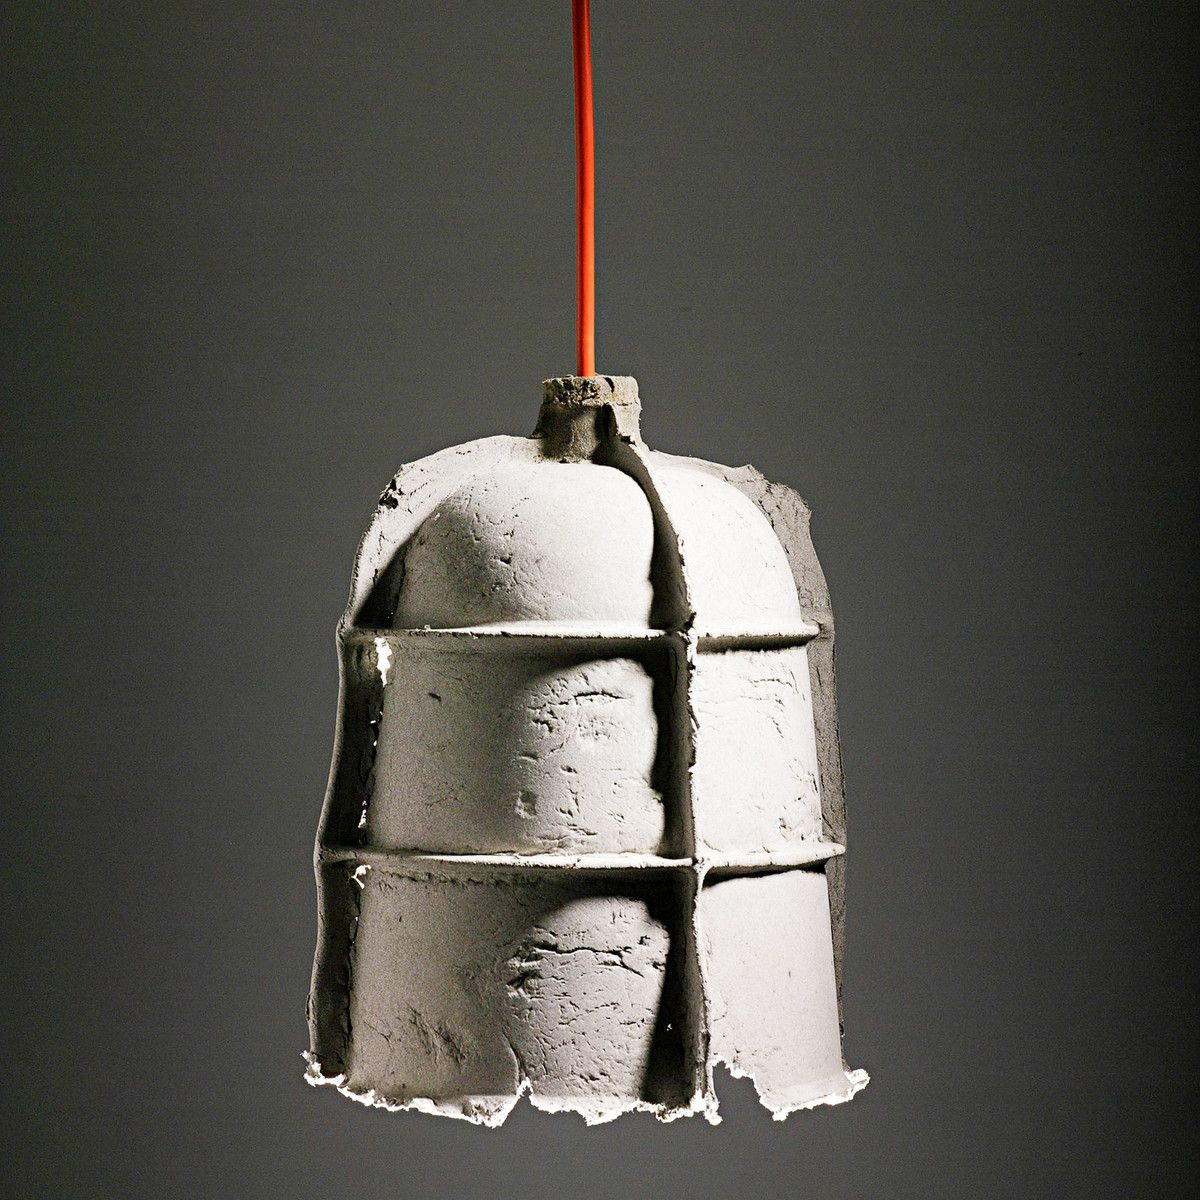 Mold pendant lamp by Michel Charlot